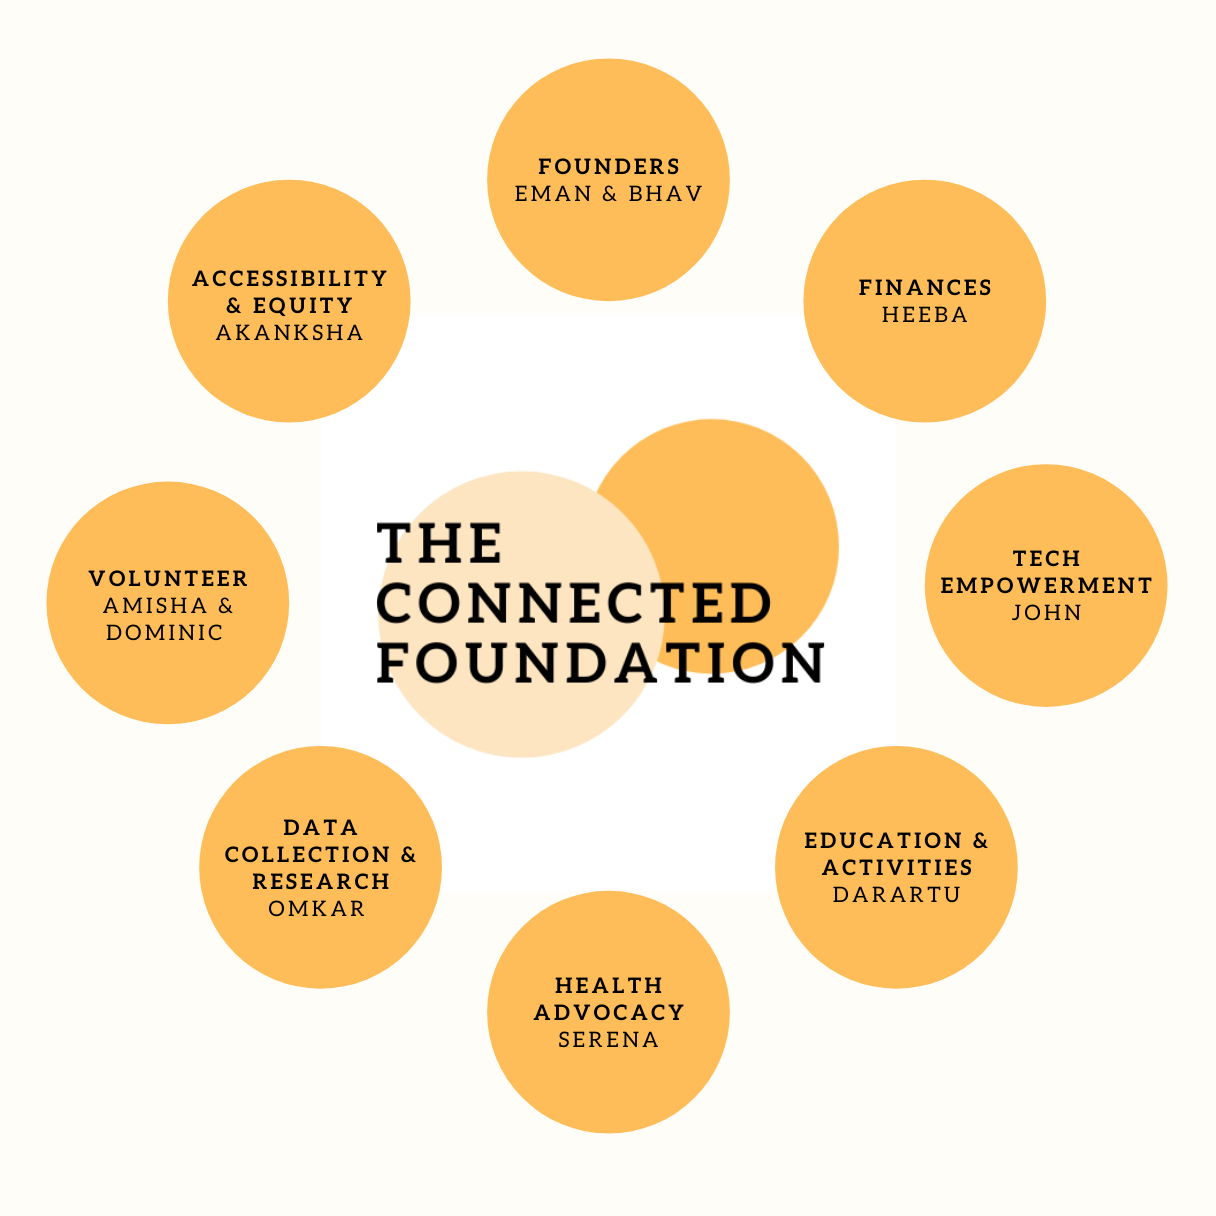 Mind map of departments at Connected Foundation and directors for each.